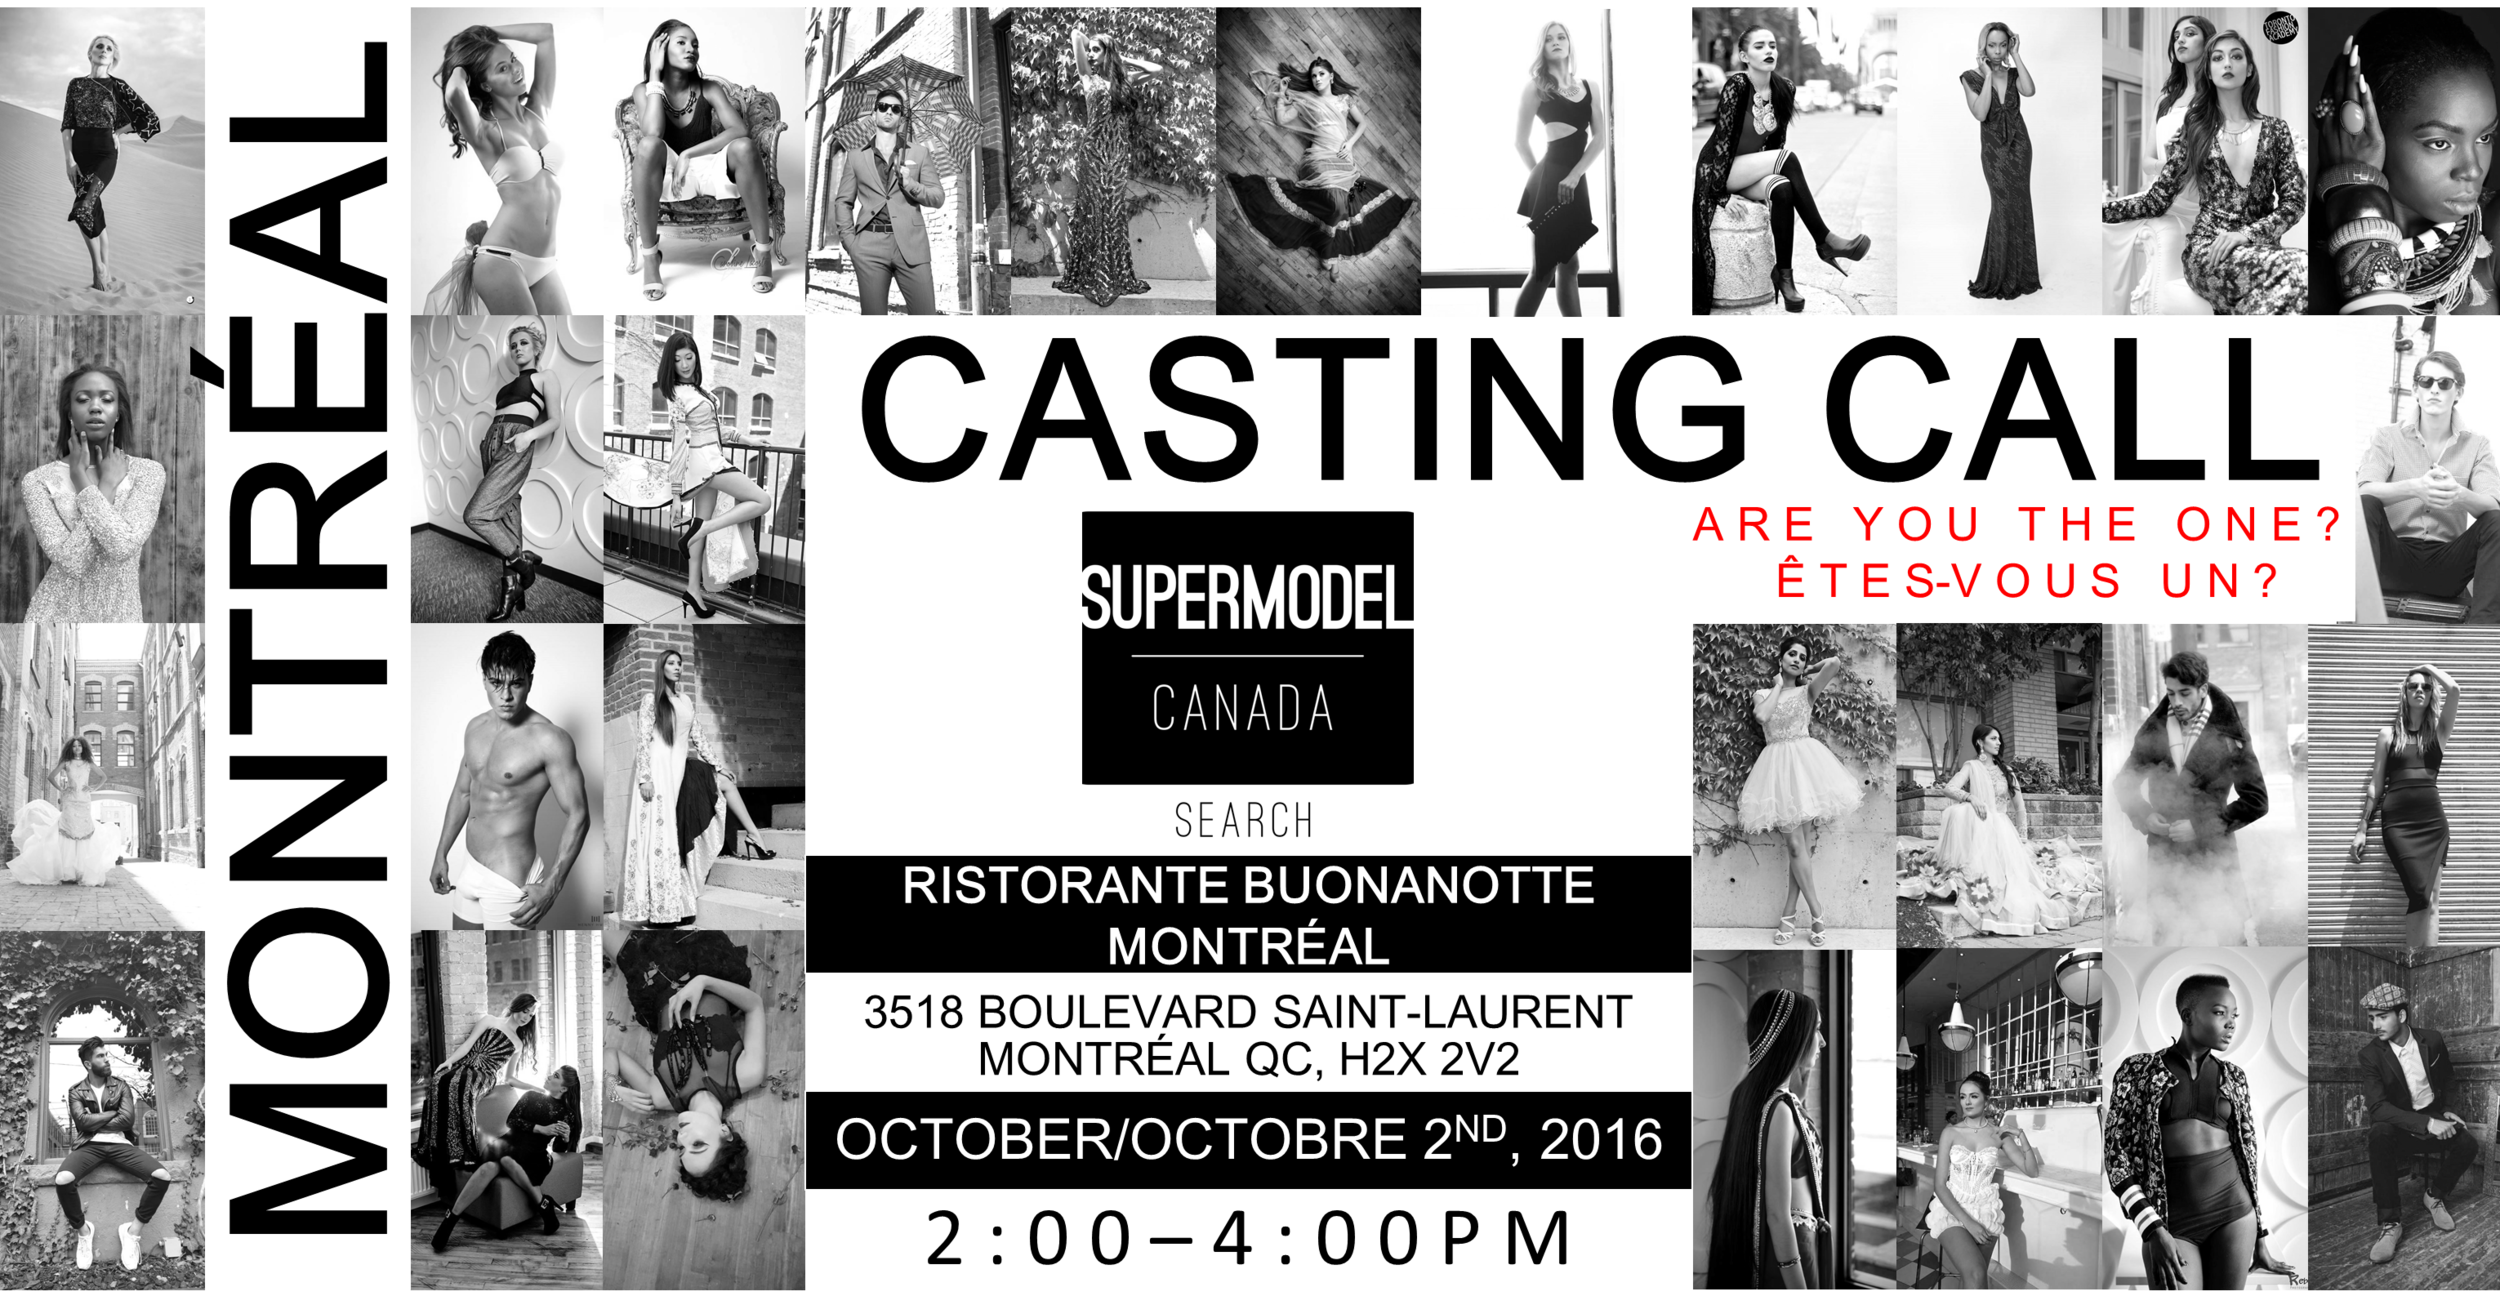 """SuperModel Canada Search  CANADA WIDE SEARCH Montreal, Quebec  FEMALE: Age: 16years-29years  Height: 5'7""""+  MALE: Age: 16years-32years Height: 5'9""""+  Location:  Ristorante Buonanotte Montreal  3518 Boulevard Saint-Laurent  Montreal QC, H2X 2V2  Time: 2:00pm - 4:00pm  APPLY NOW!"""